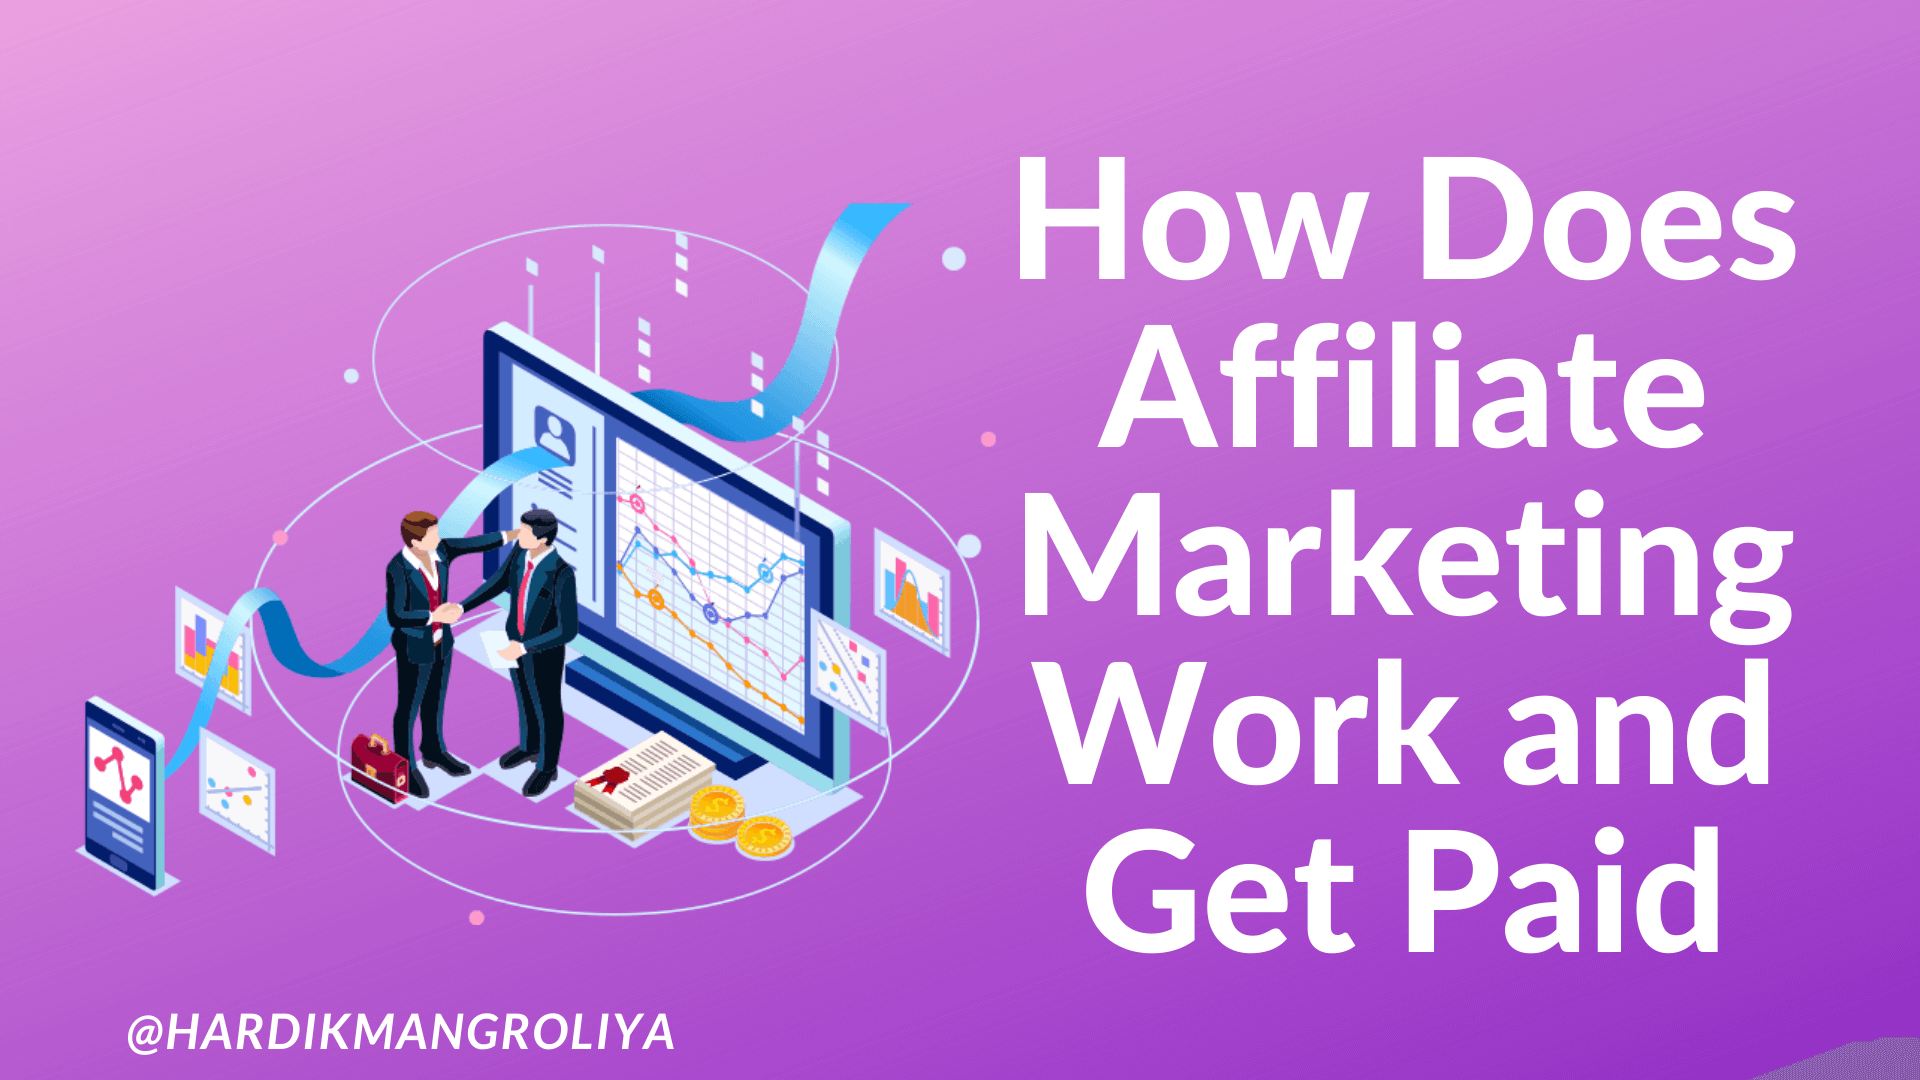 How Does Affiliate Marketing Work and Get Paid - Affiliate marketing